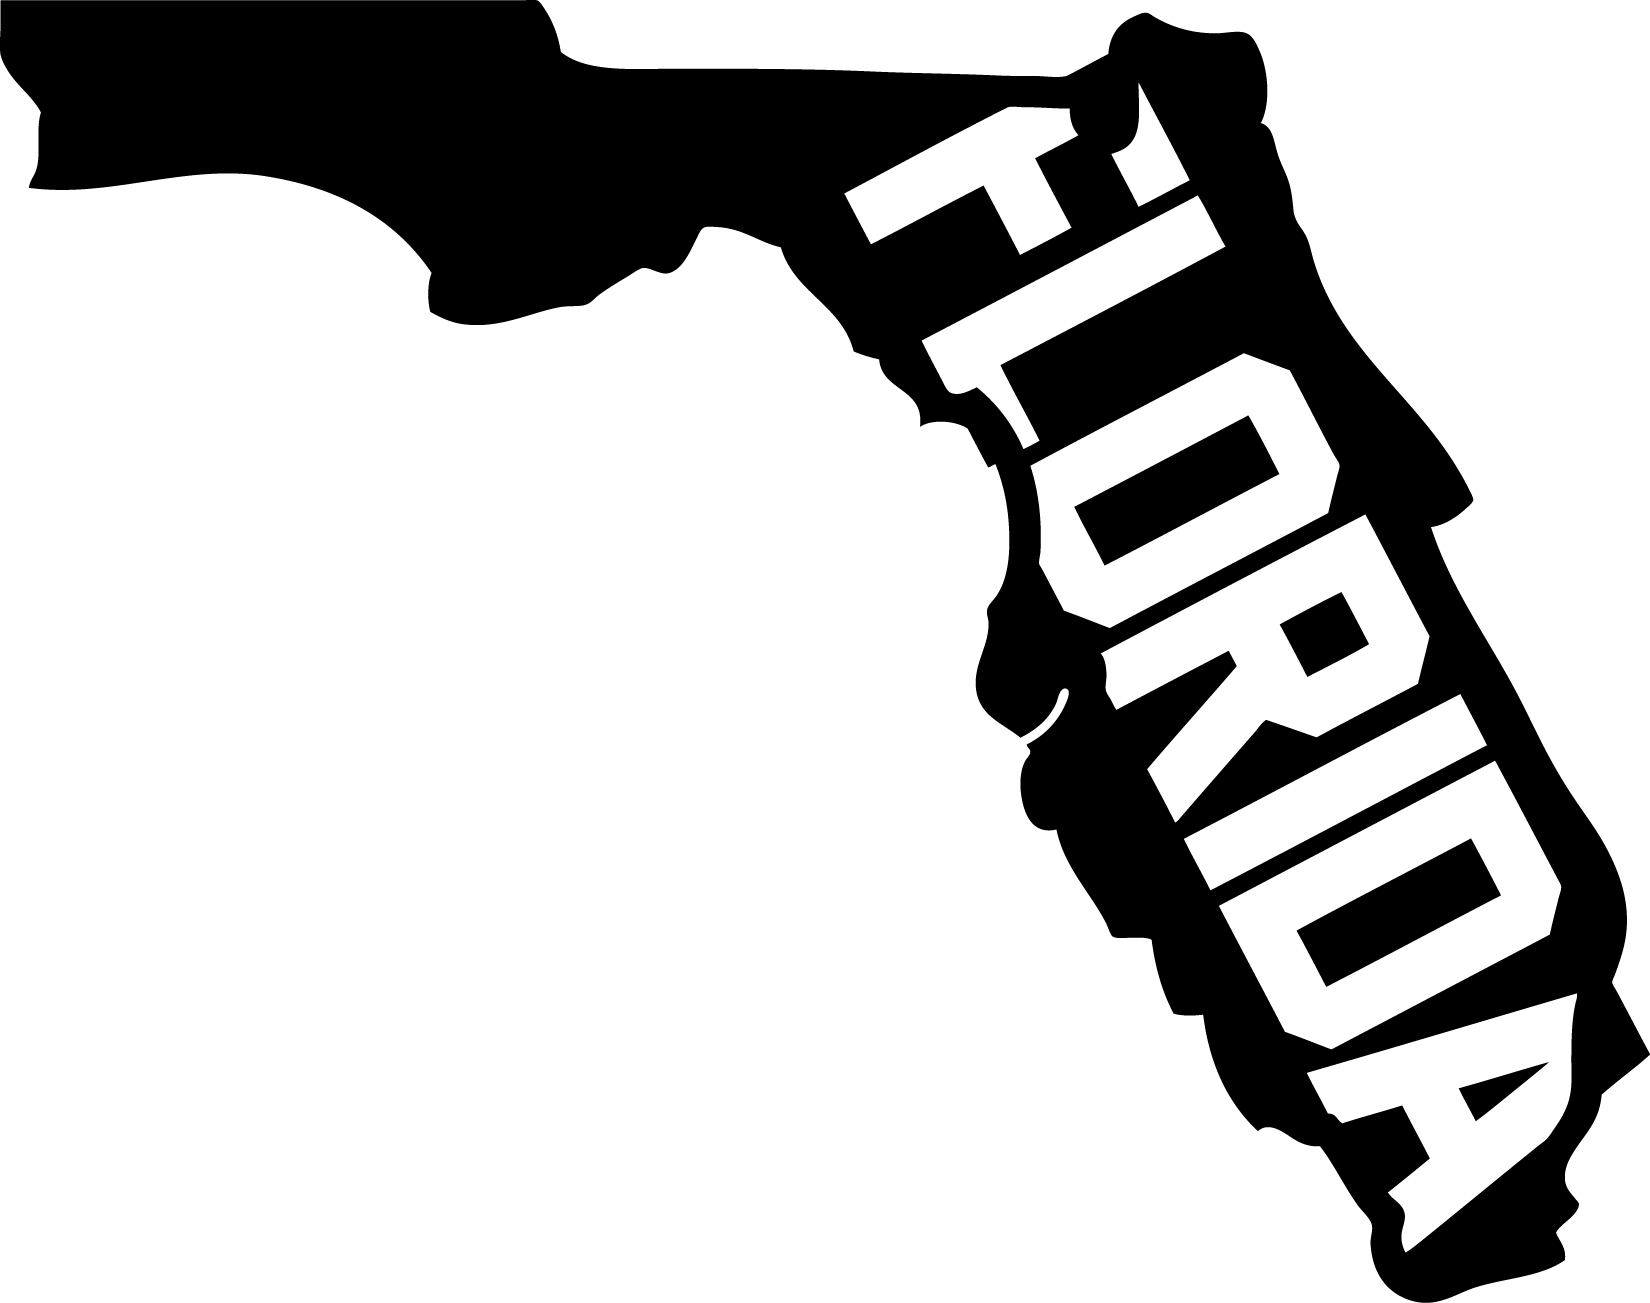 Florida state outline png. Chamber poll shows voters